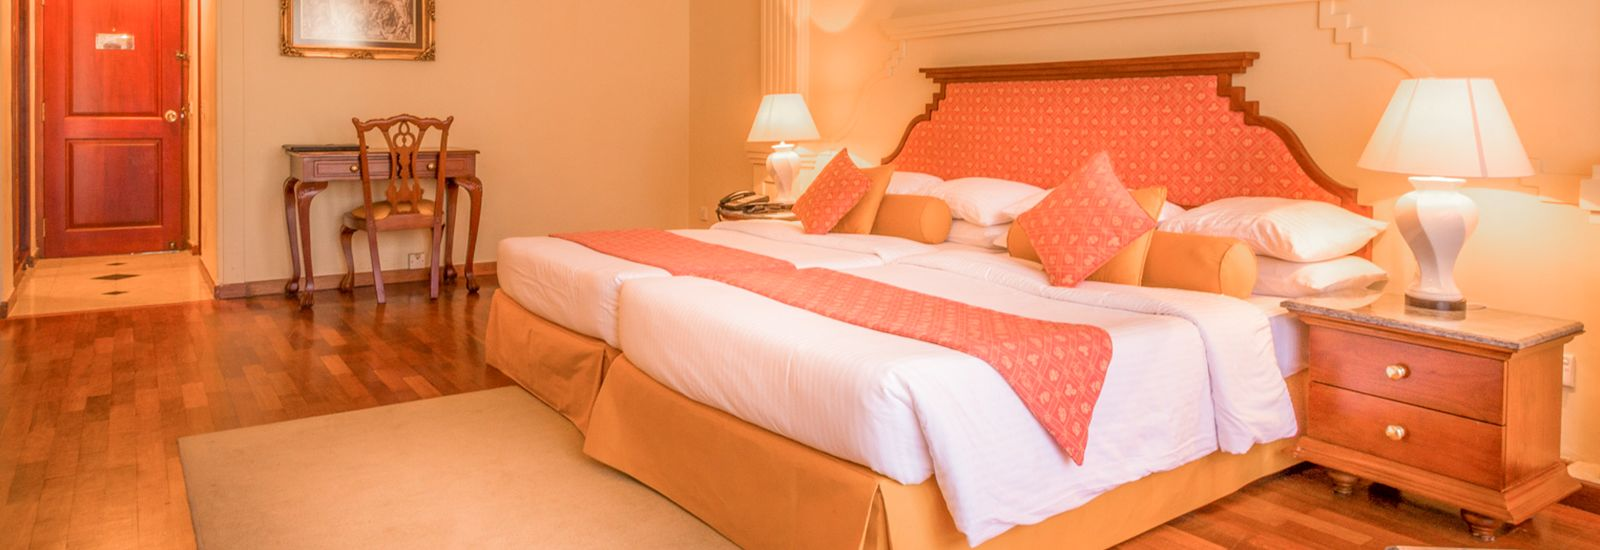 Angle View of the Deluxe Room at Mahaweli Reach Hotel